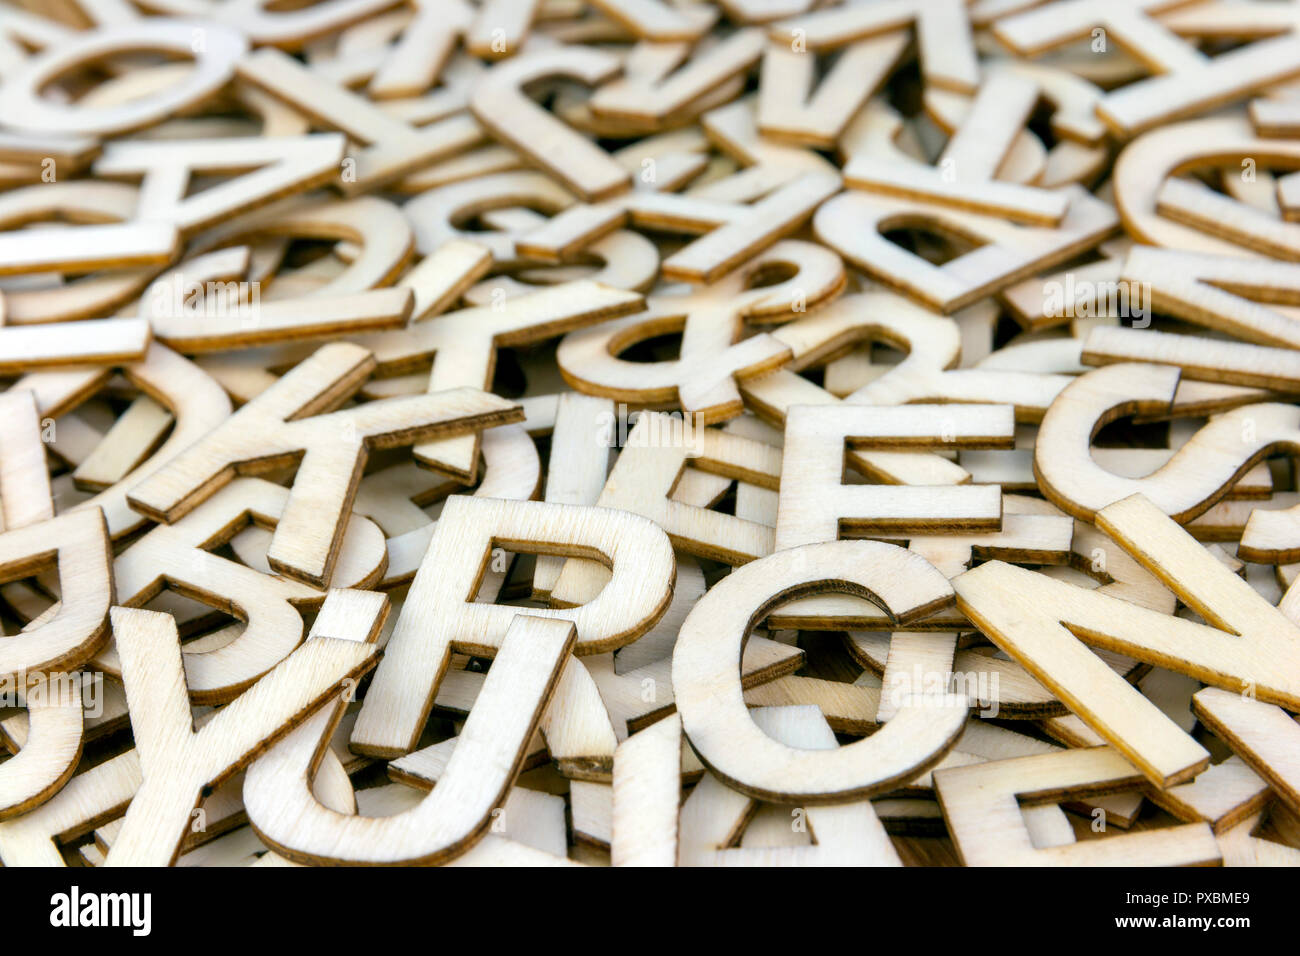 Pile of mixed wooden capital letters close up with a shallow depth of field - Stock Image